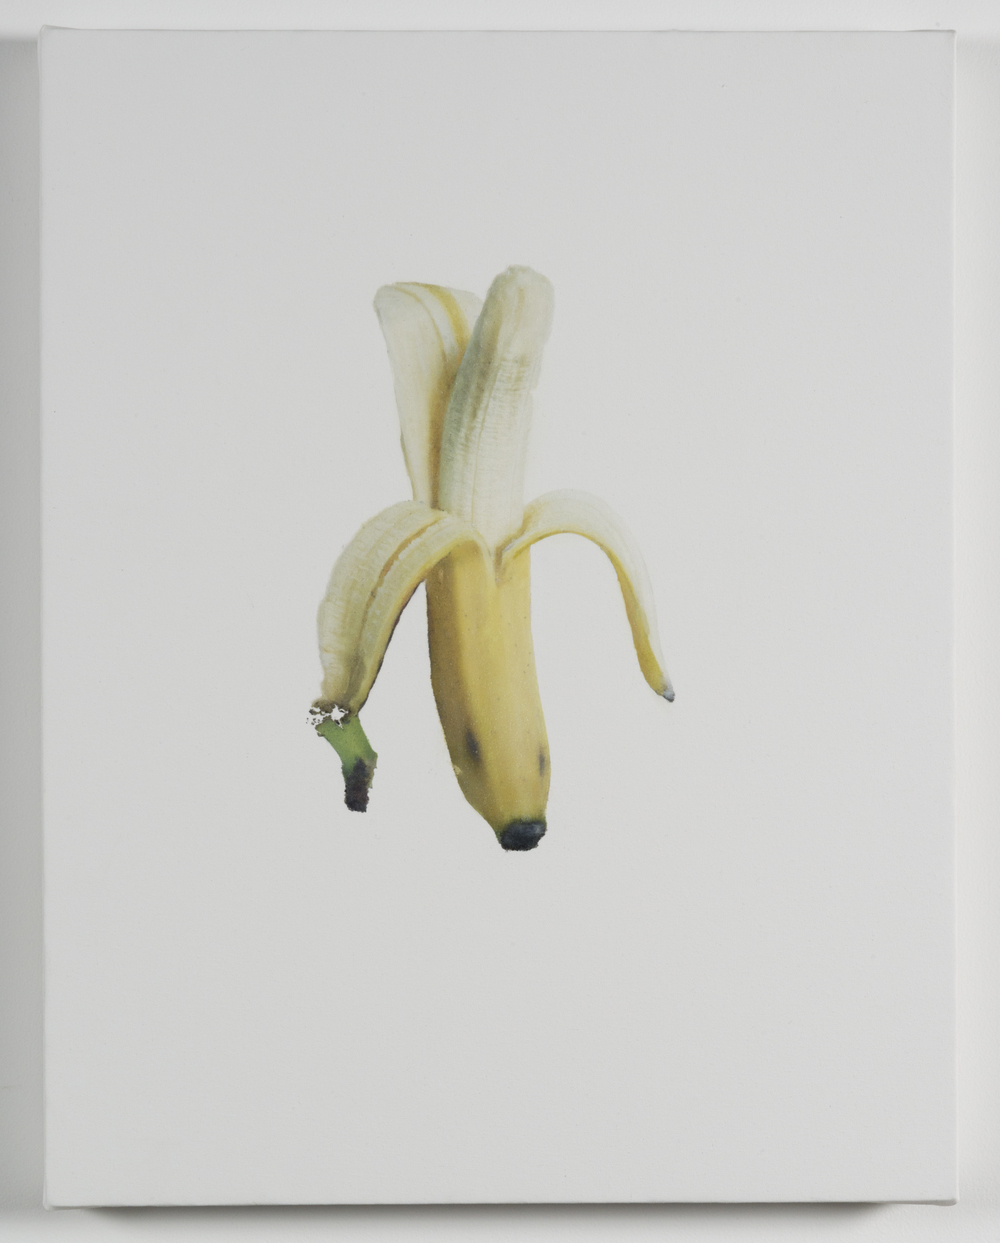 Jpeg (upright banana) 1